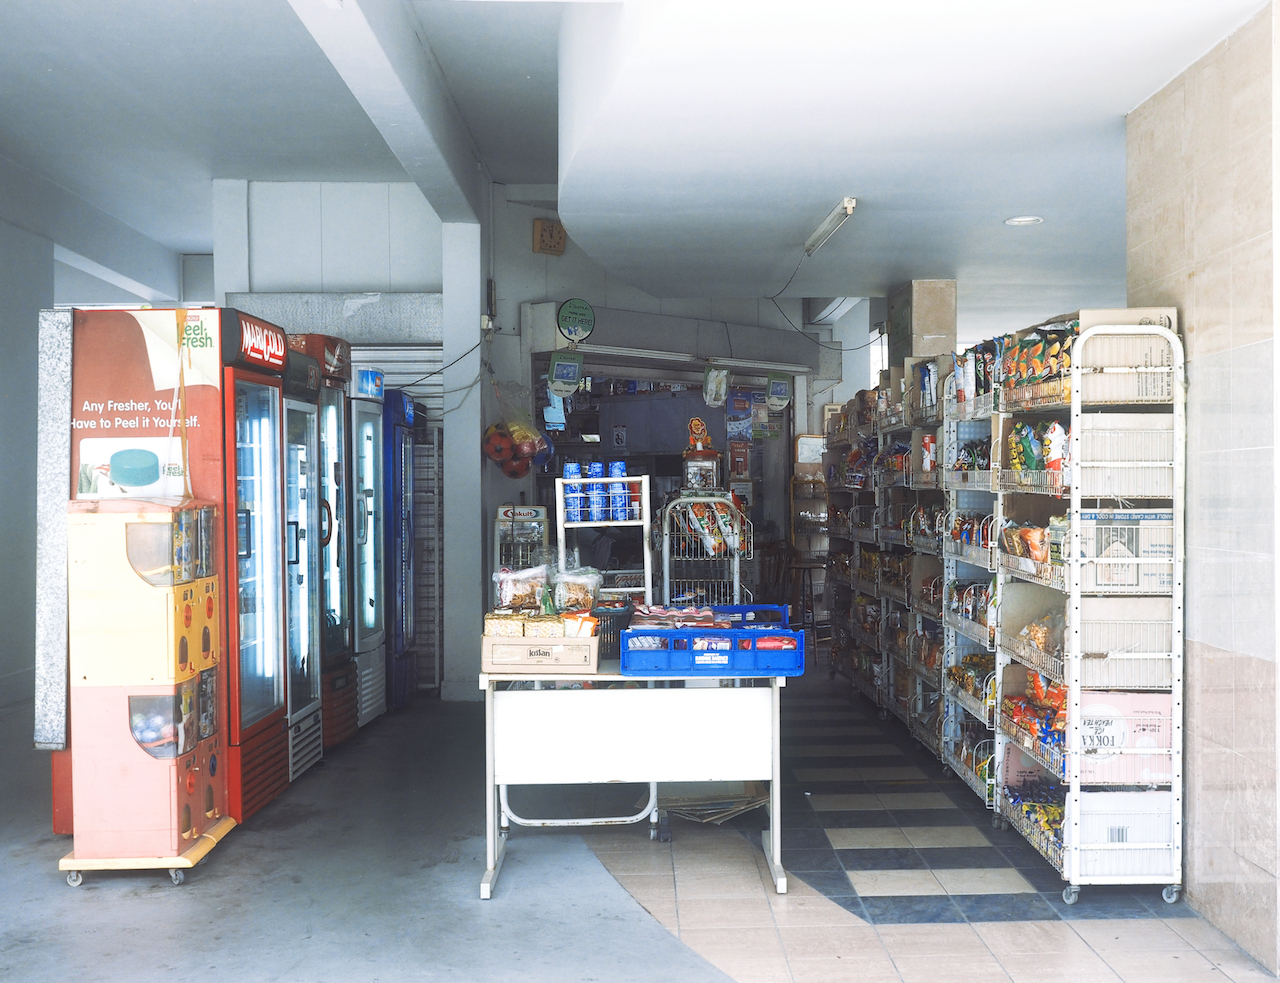 After a Cigarette Display Ban, A Sugar Tax Will Surely Kill the Mama Shop